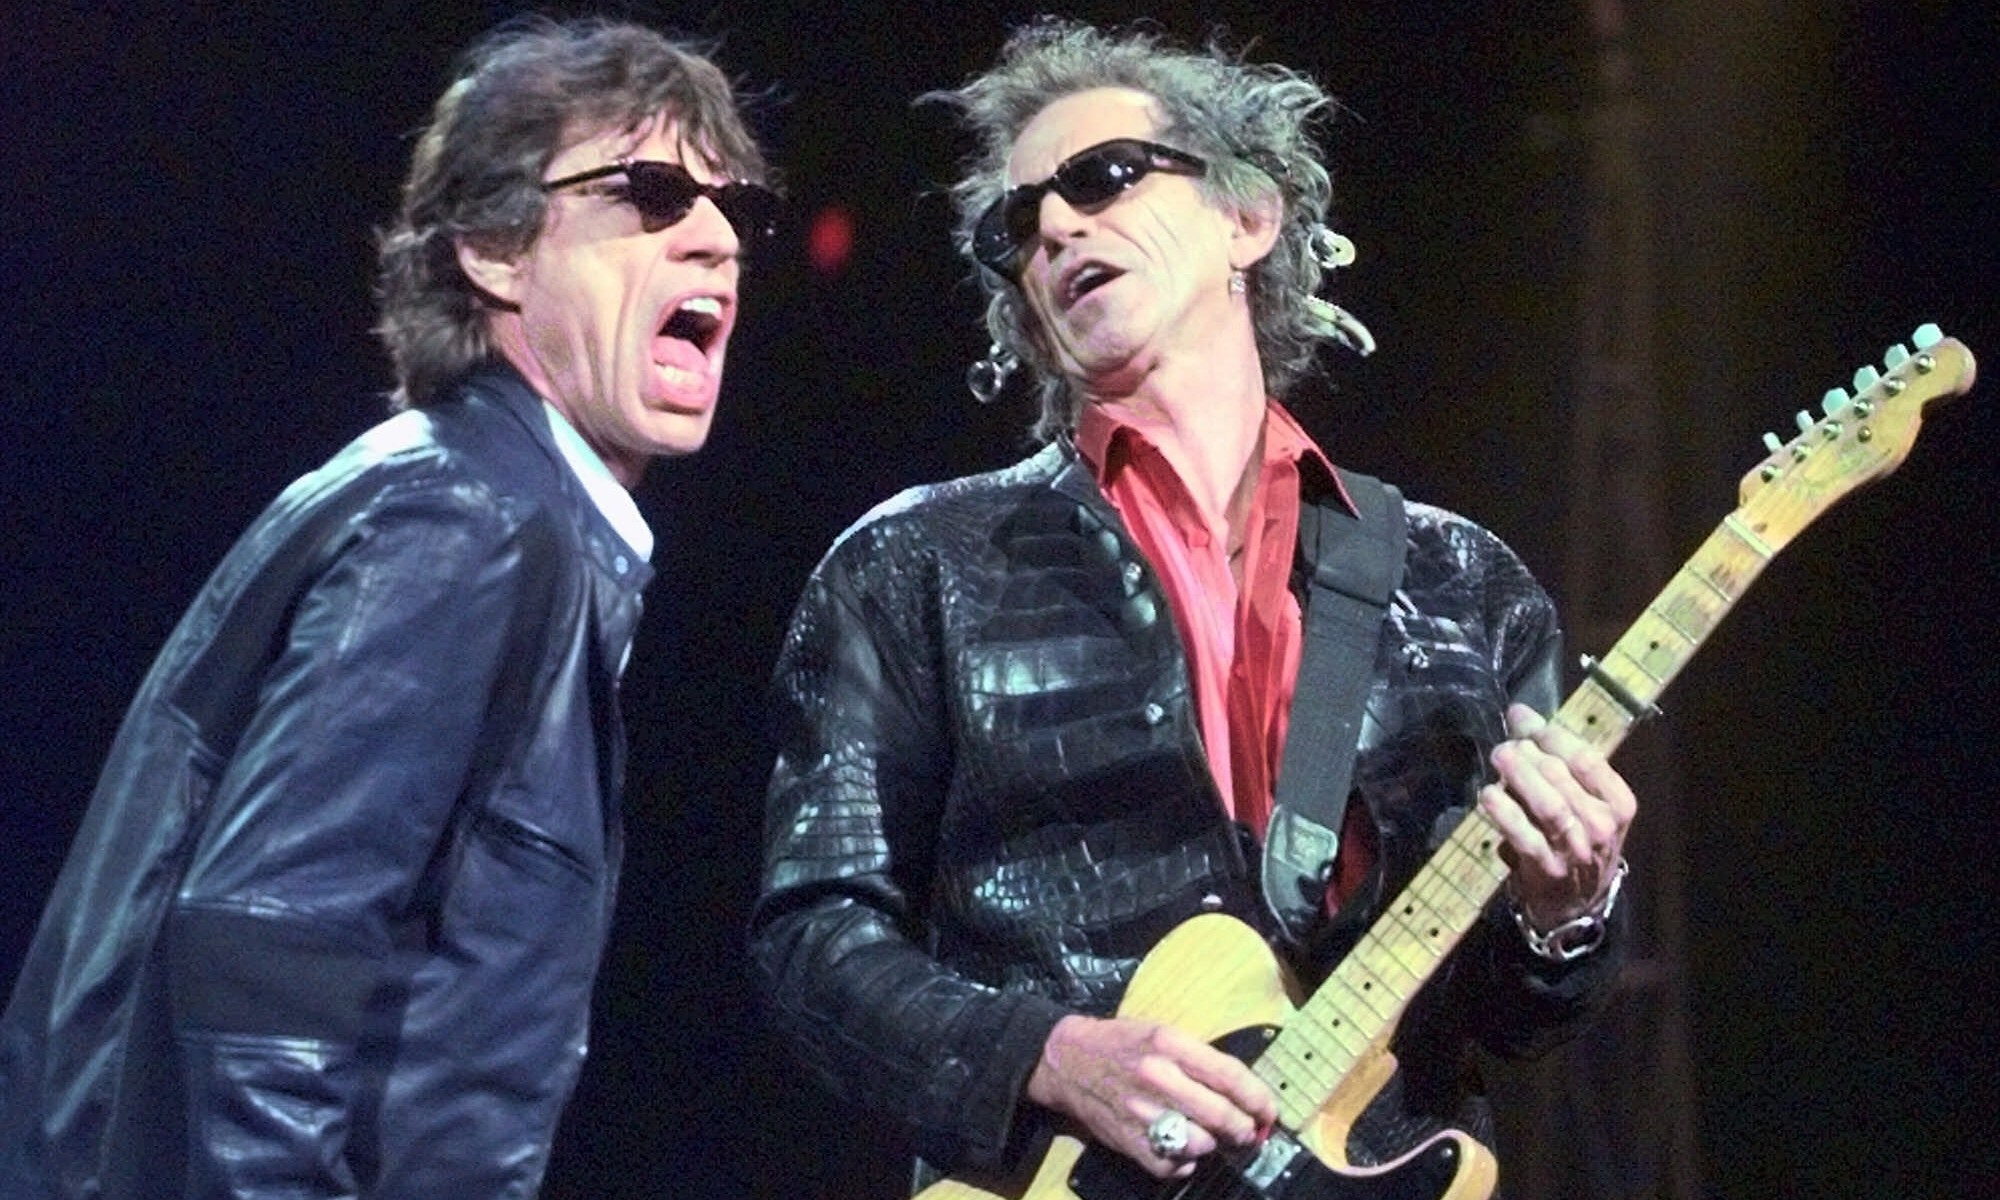 Mick Jagger, left, and Keith Richards perform 'Jumping Jack Flash' during the Rolling Stones' No Security Tour performance at the Fleet Center in Boston Monday night, March 22, 1999. (AP Photo/Elise Amendola)